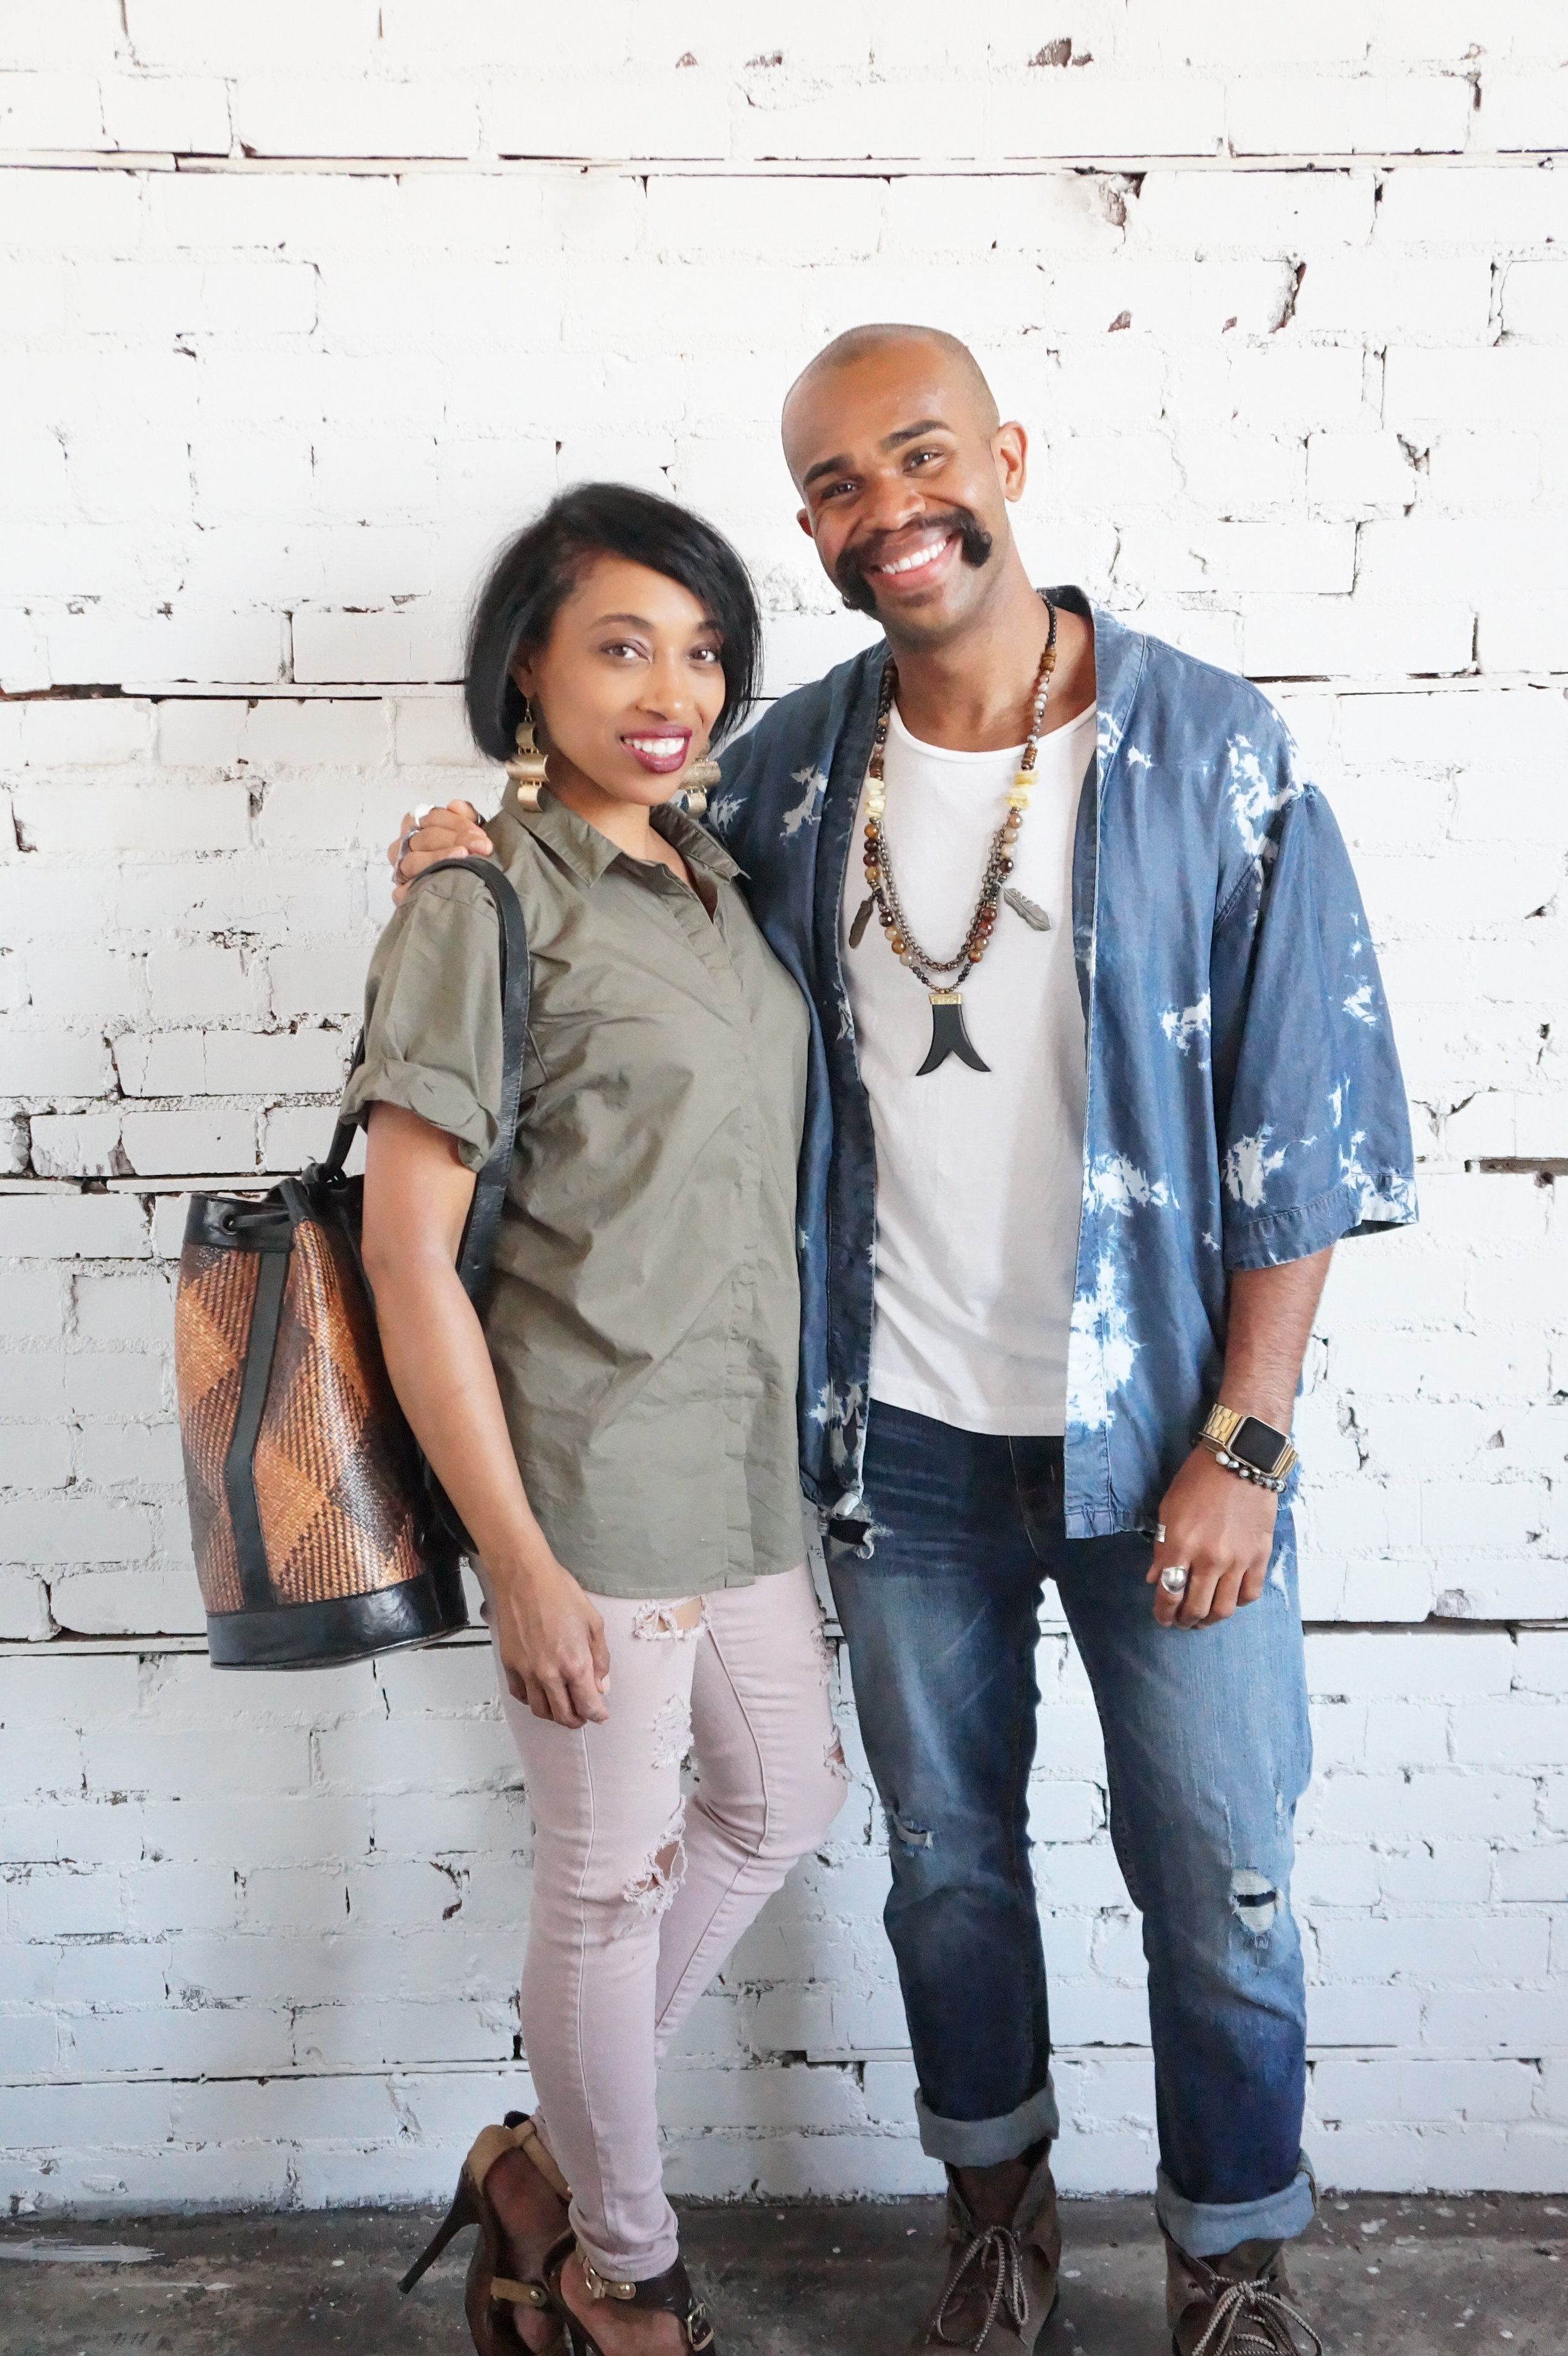 Andrea Fenise Memphis Fashion Blogger features Style in the City IVJD Studio